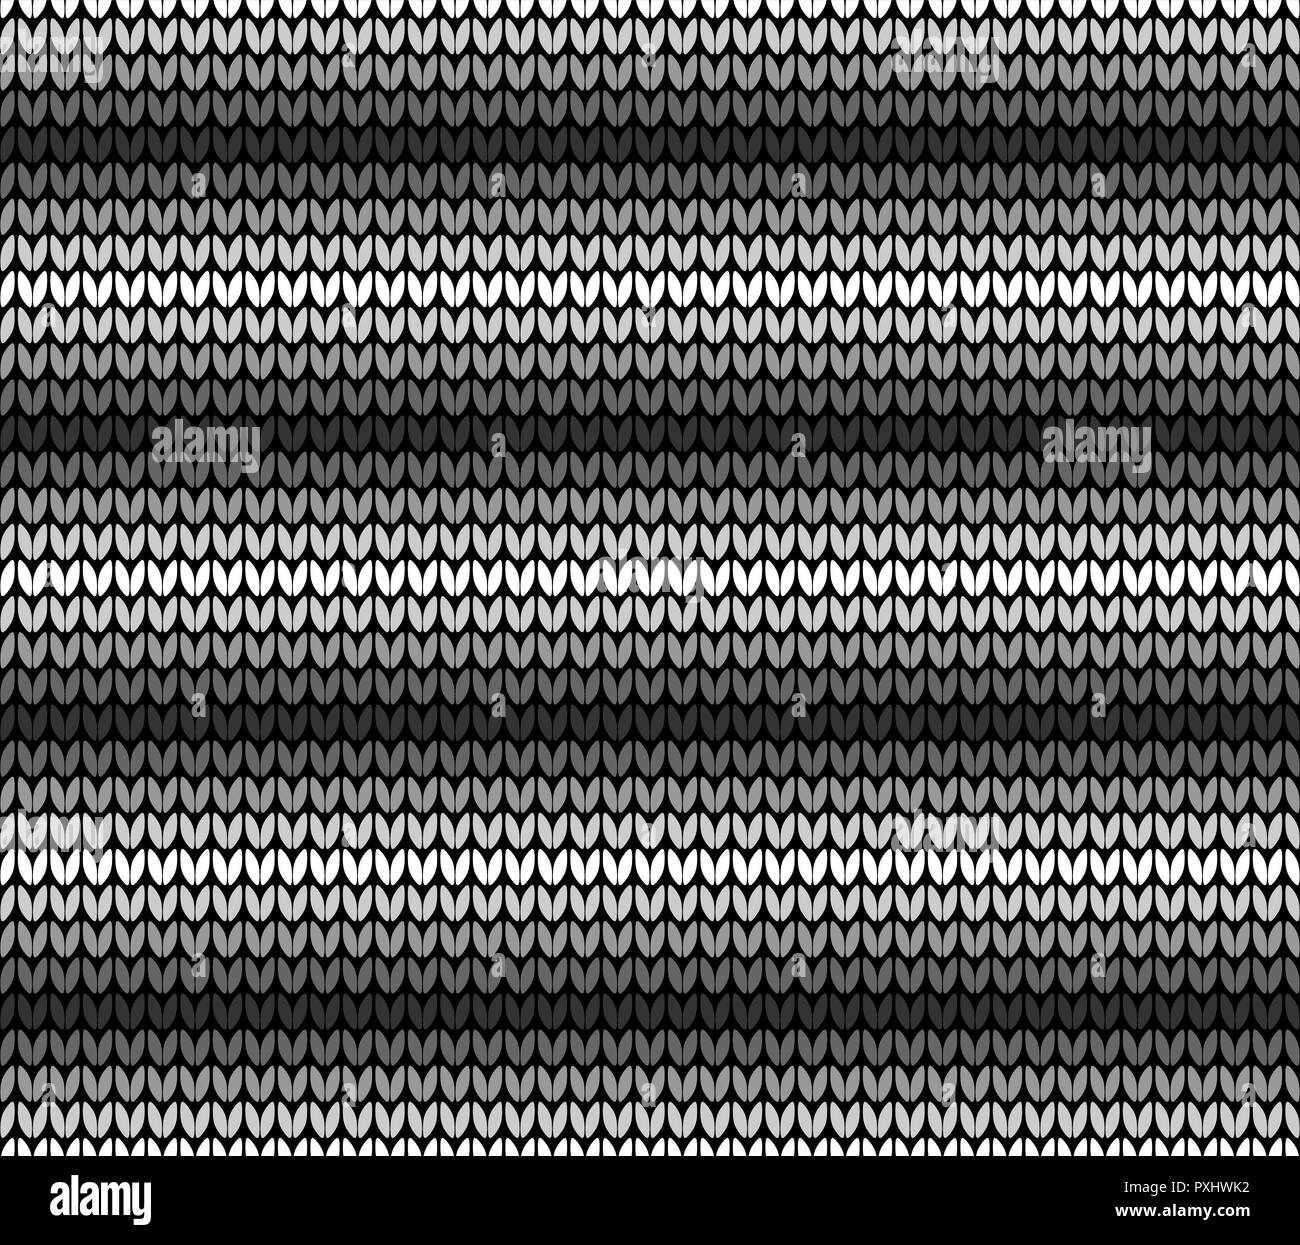 Abstract black gray and white seamless knitting pattern background - Stock Vector